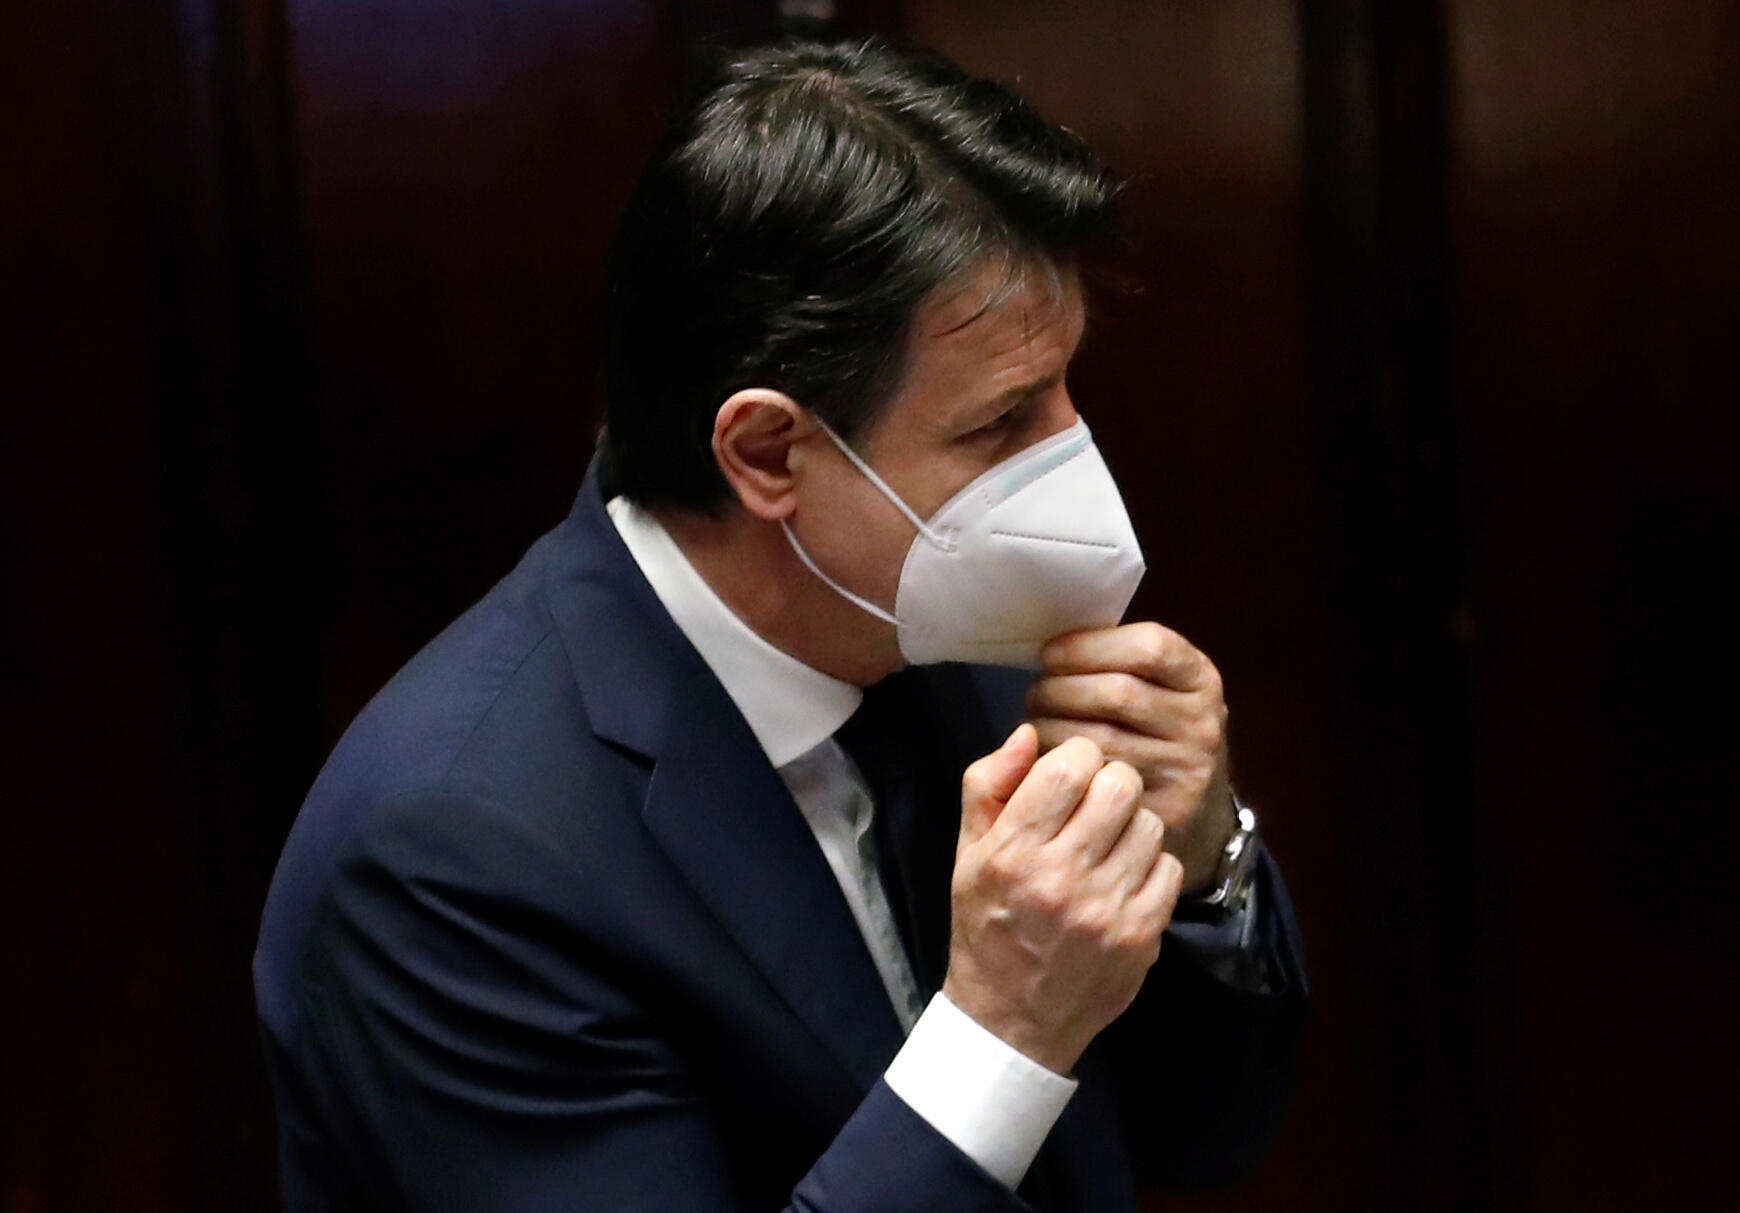 Prime Minister Giuseppe Conte wears a face mask as he attends a session of the lower house of parliament in Rome on April 21, 2020.